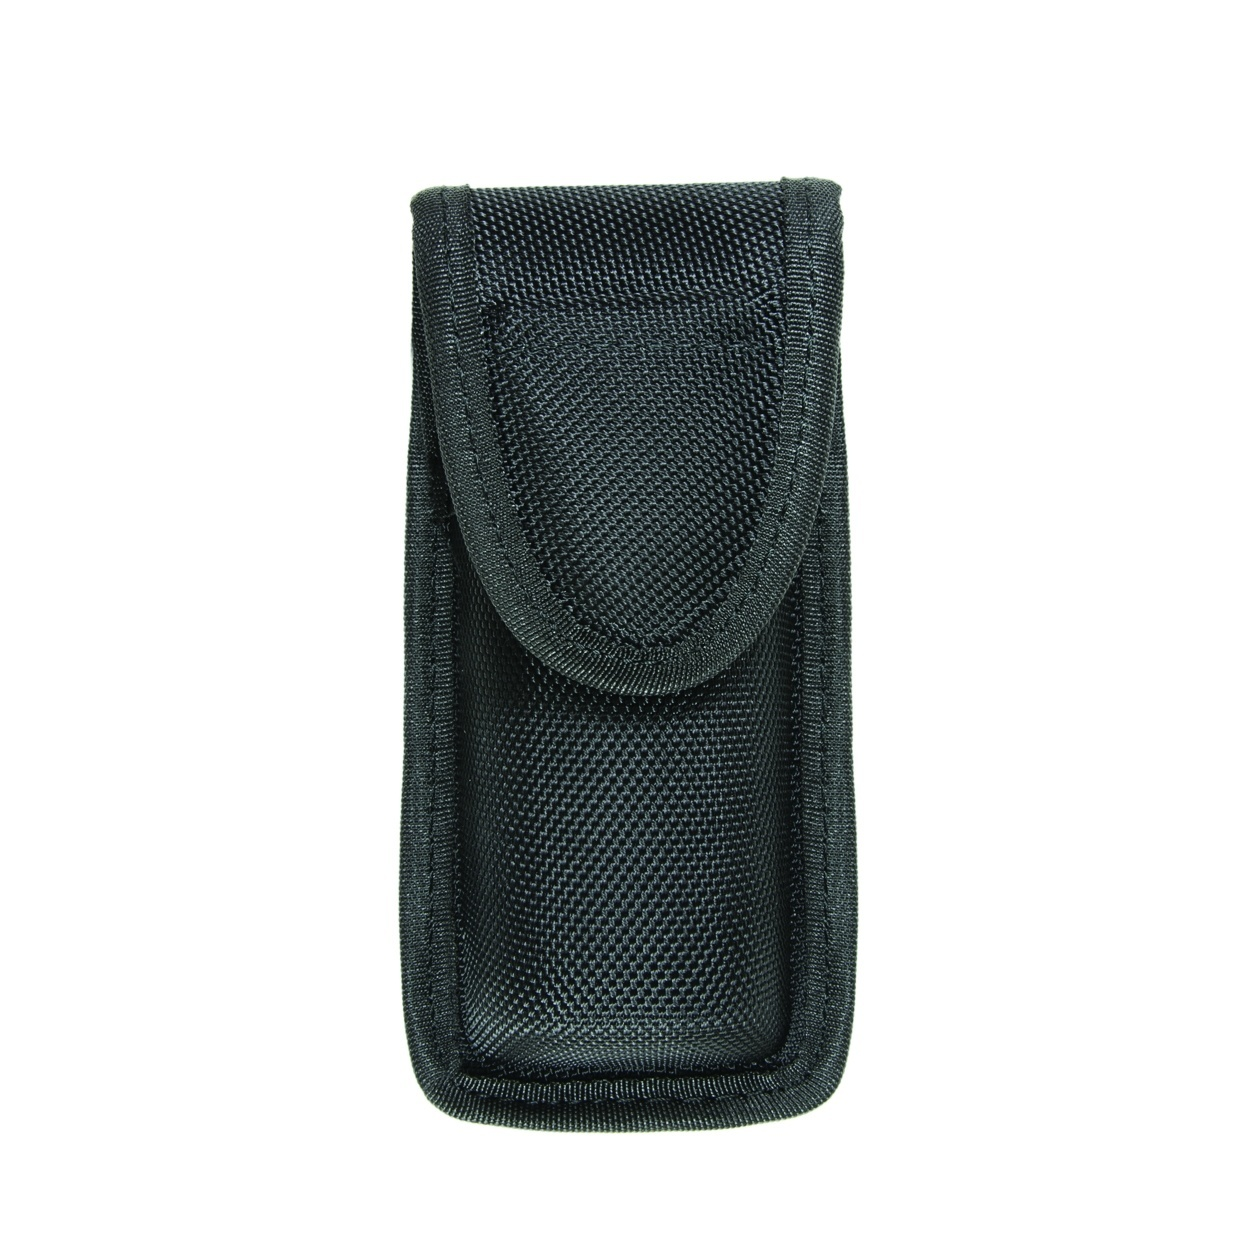 Pepper Spray Case - Closed - Small (MK2/MK3/MK6) - Ballistic-Hero's Pride